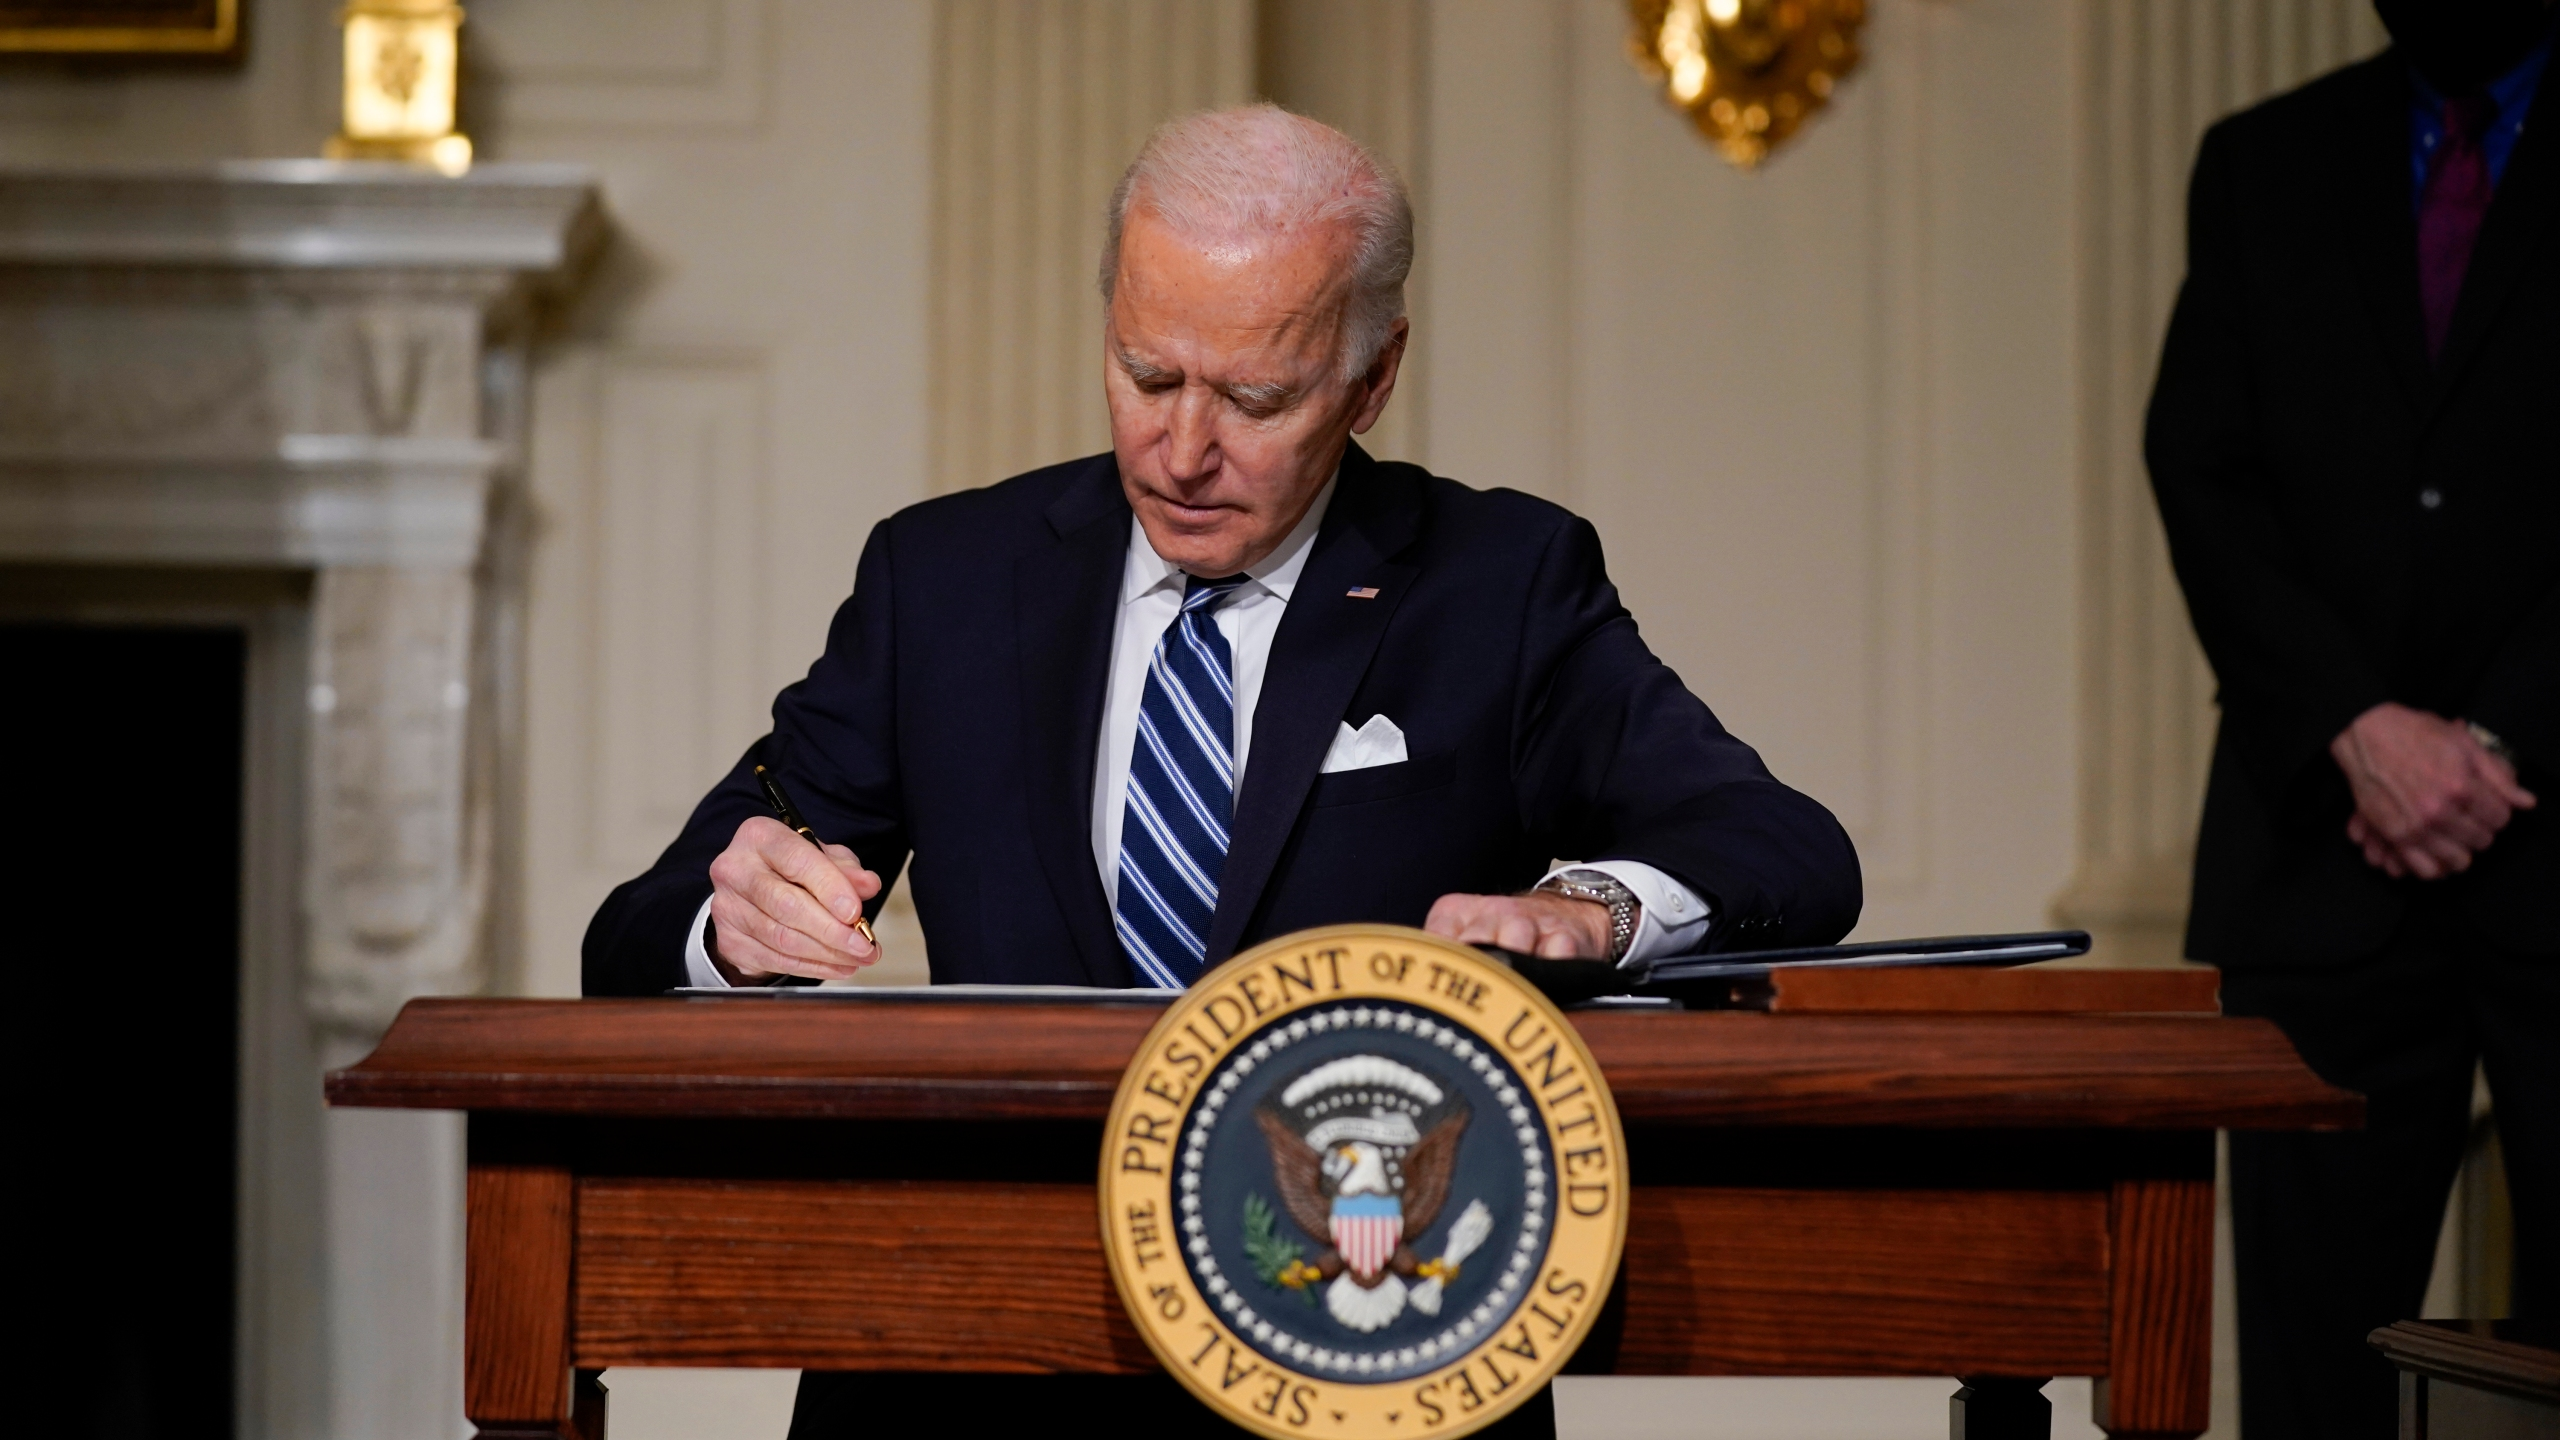 President Joe Biden signs an executive order on climate change in the State Dining Room of the White House on Jan. 27, 2021. (Evan Vucci / Associated Press)